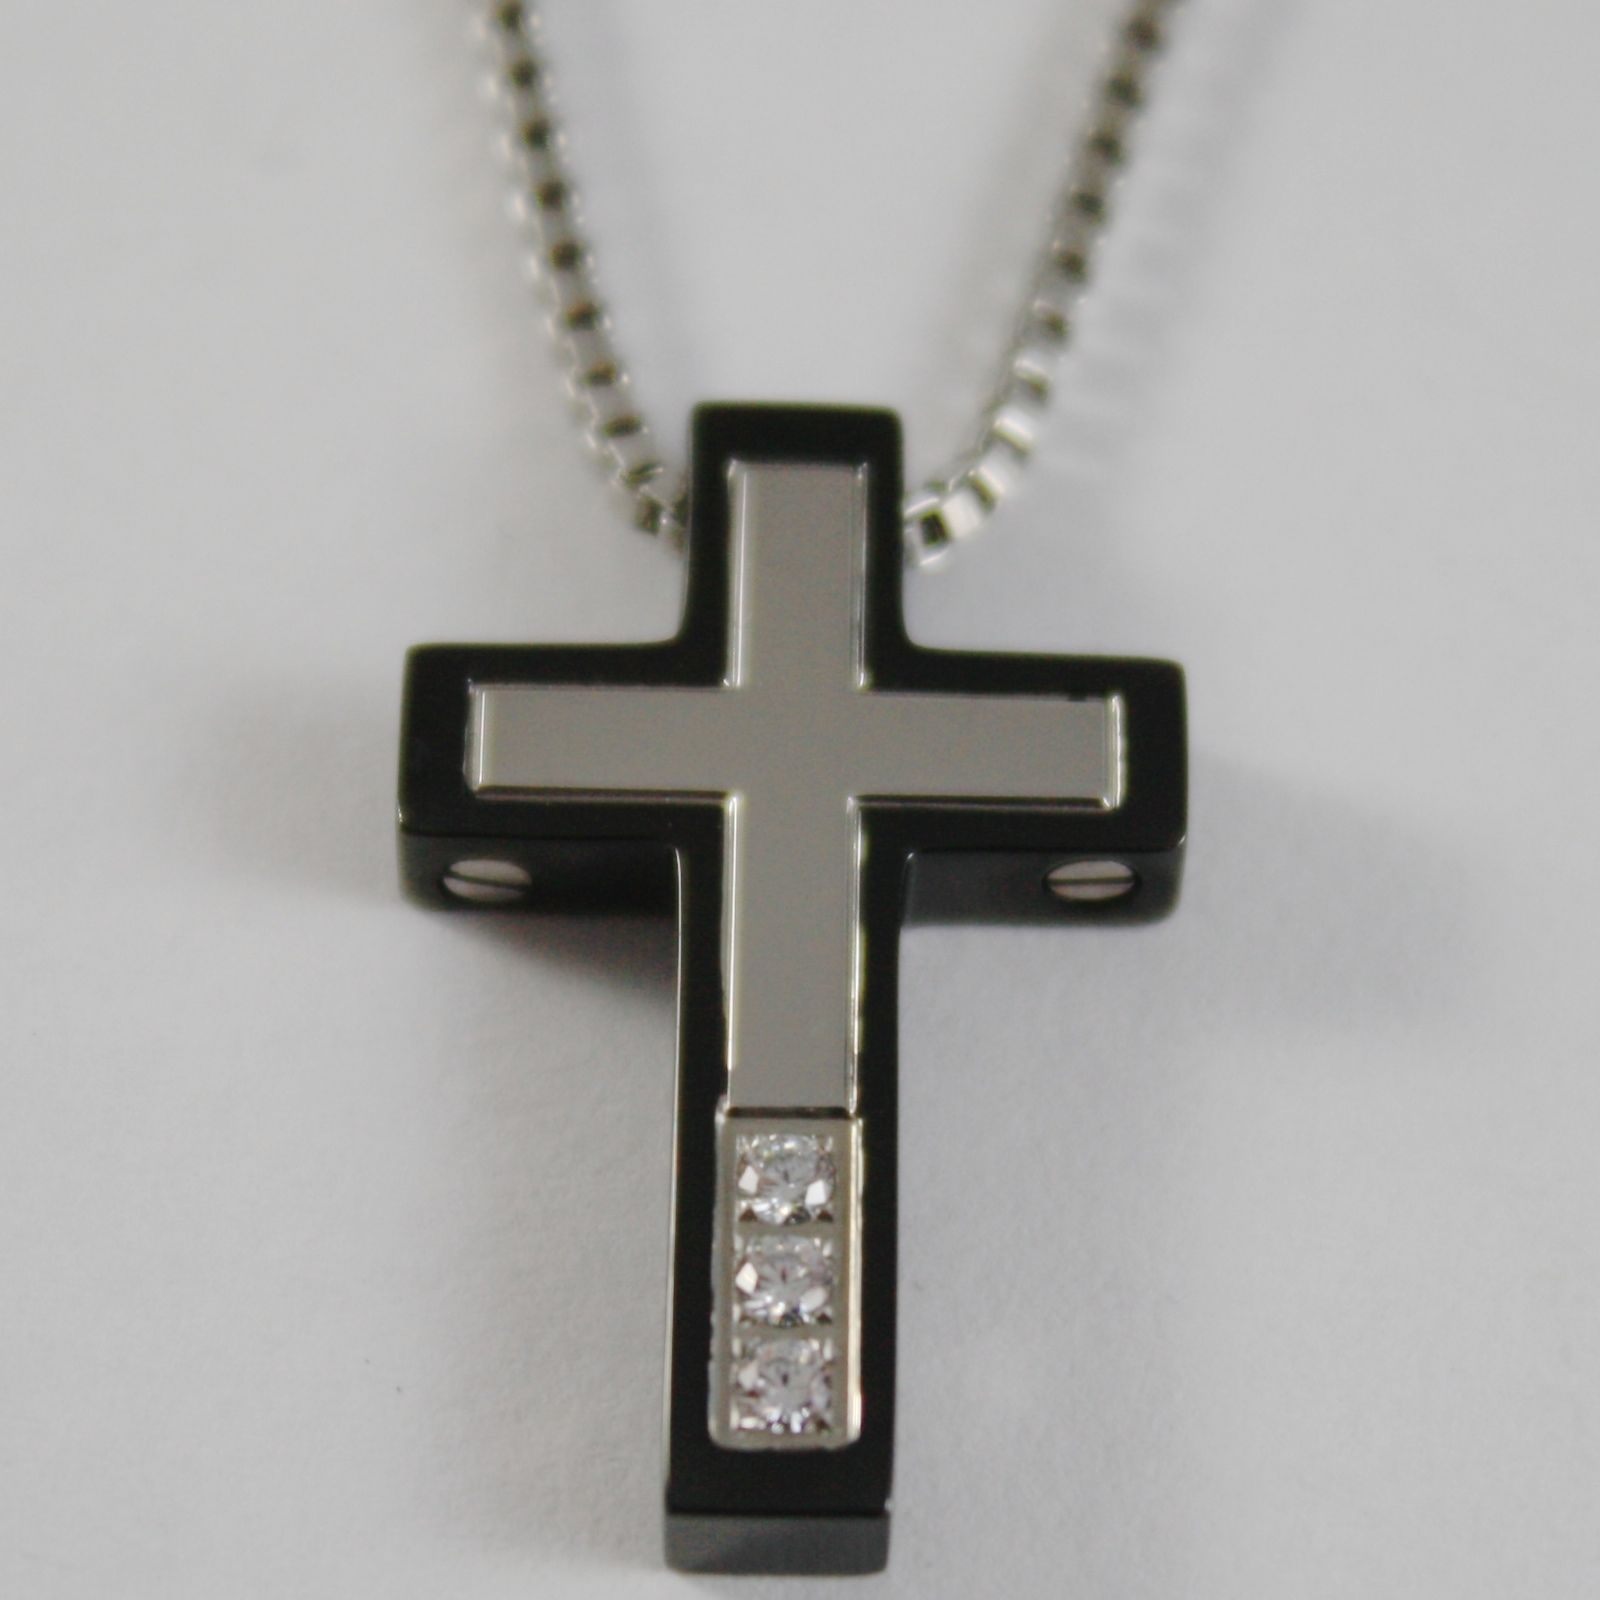 STAINLESS STEEL CROSS PENDANT, ZIRCONIA, VENETIAN CHAIN, NECKLACE BY ZANCAN